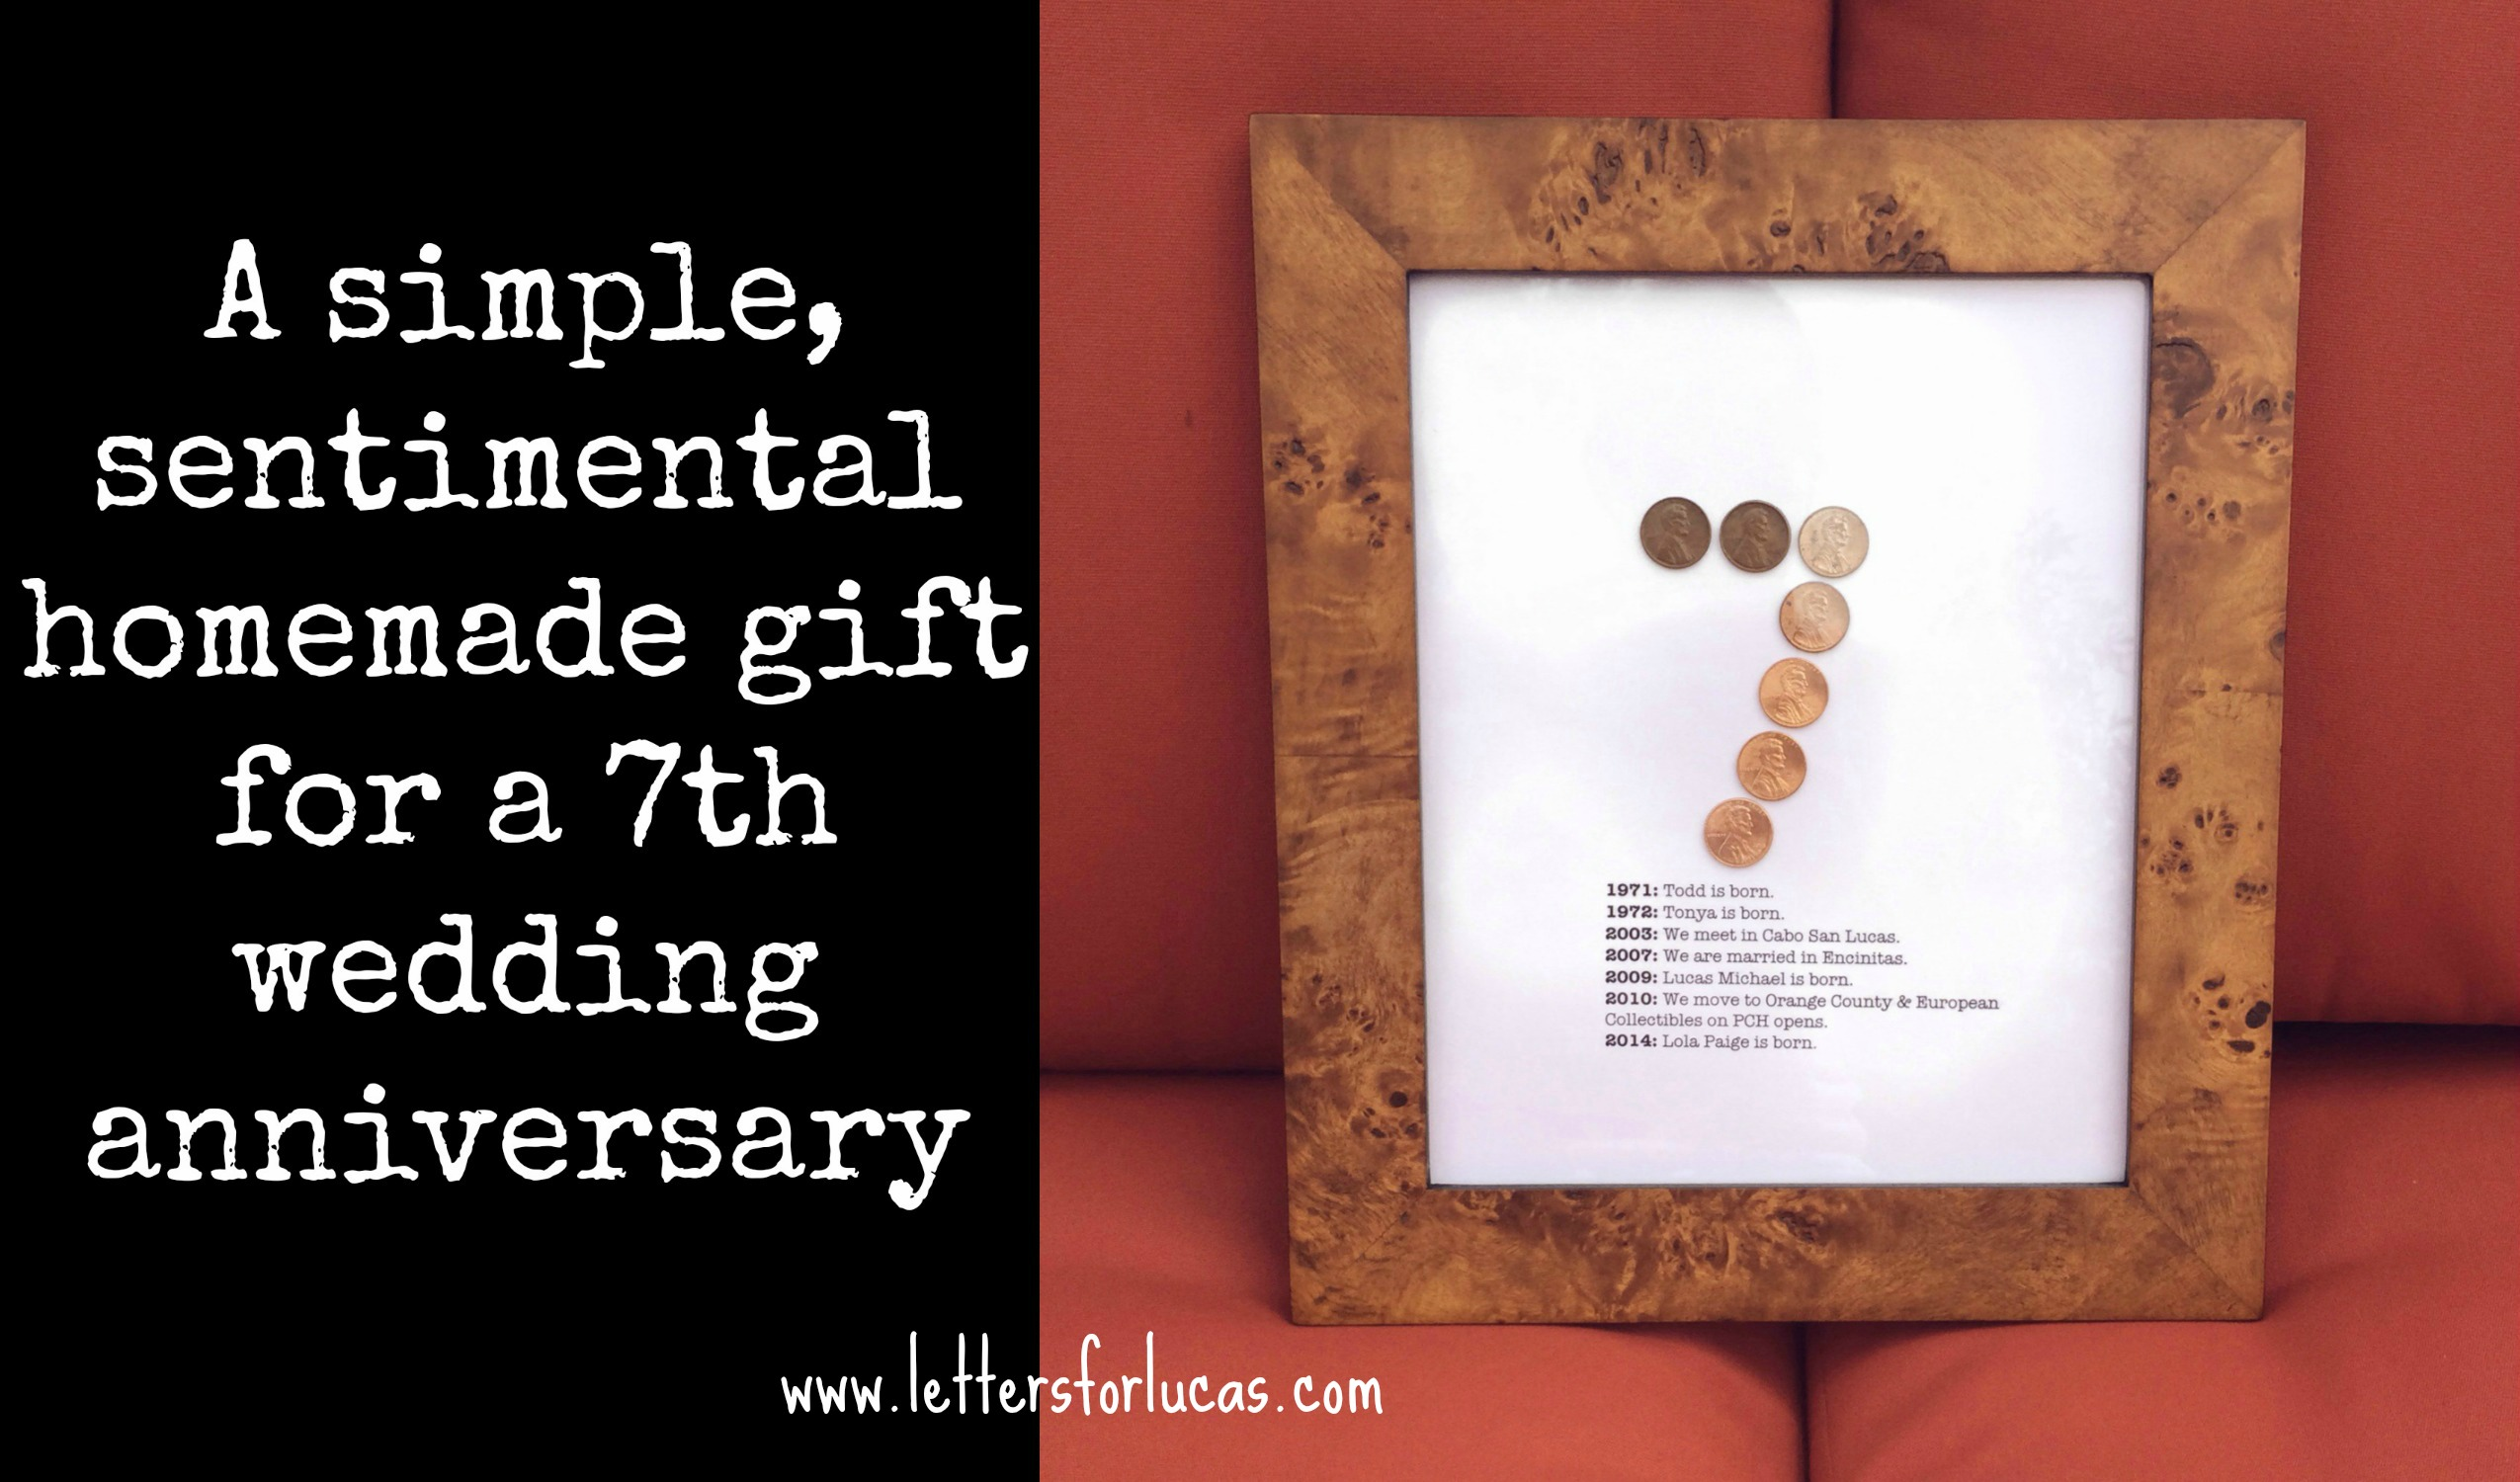 Wedding Gifts For 7th Anniversary : simple gift idea for your 7th wedding anniversary